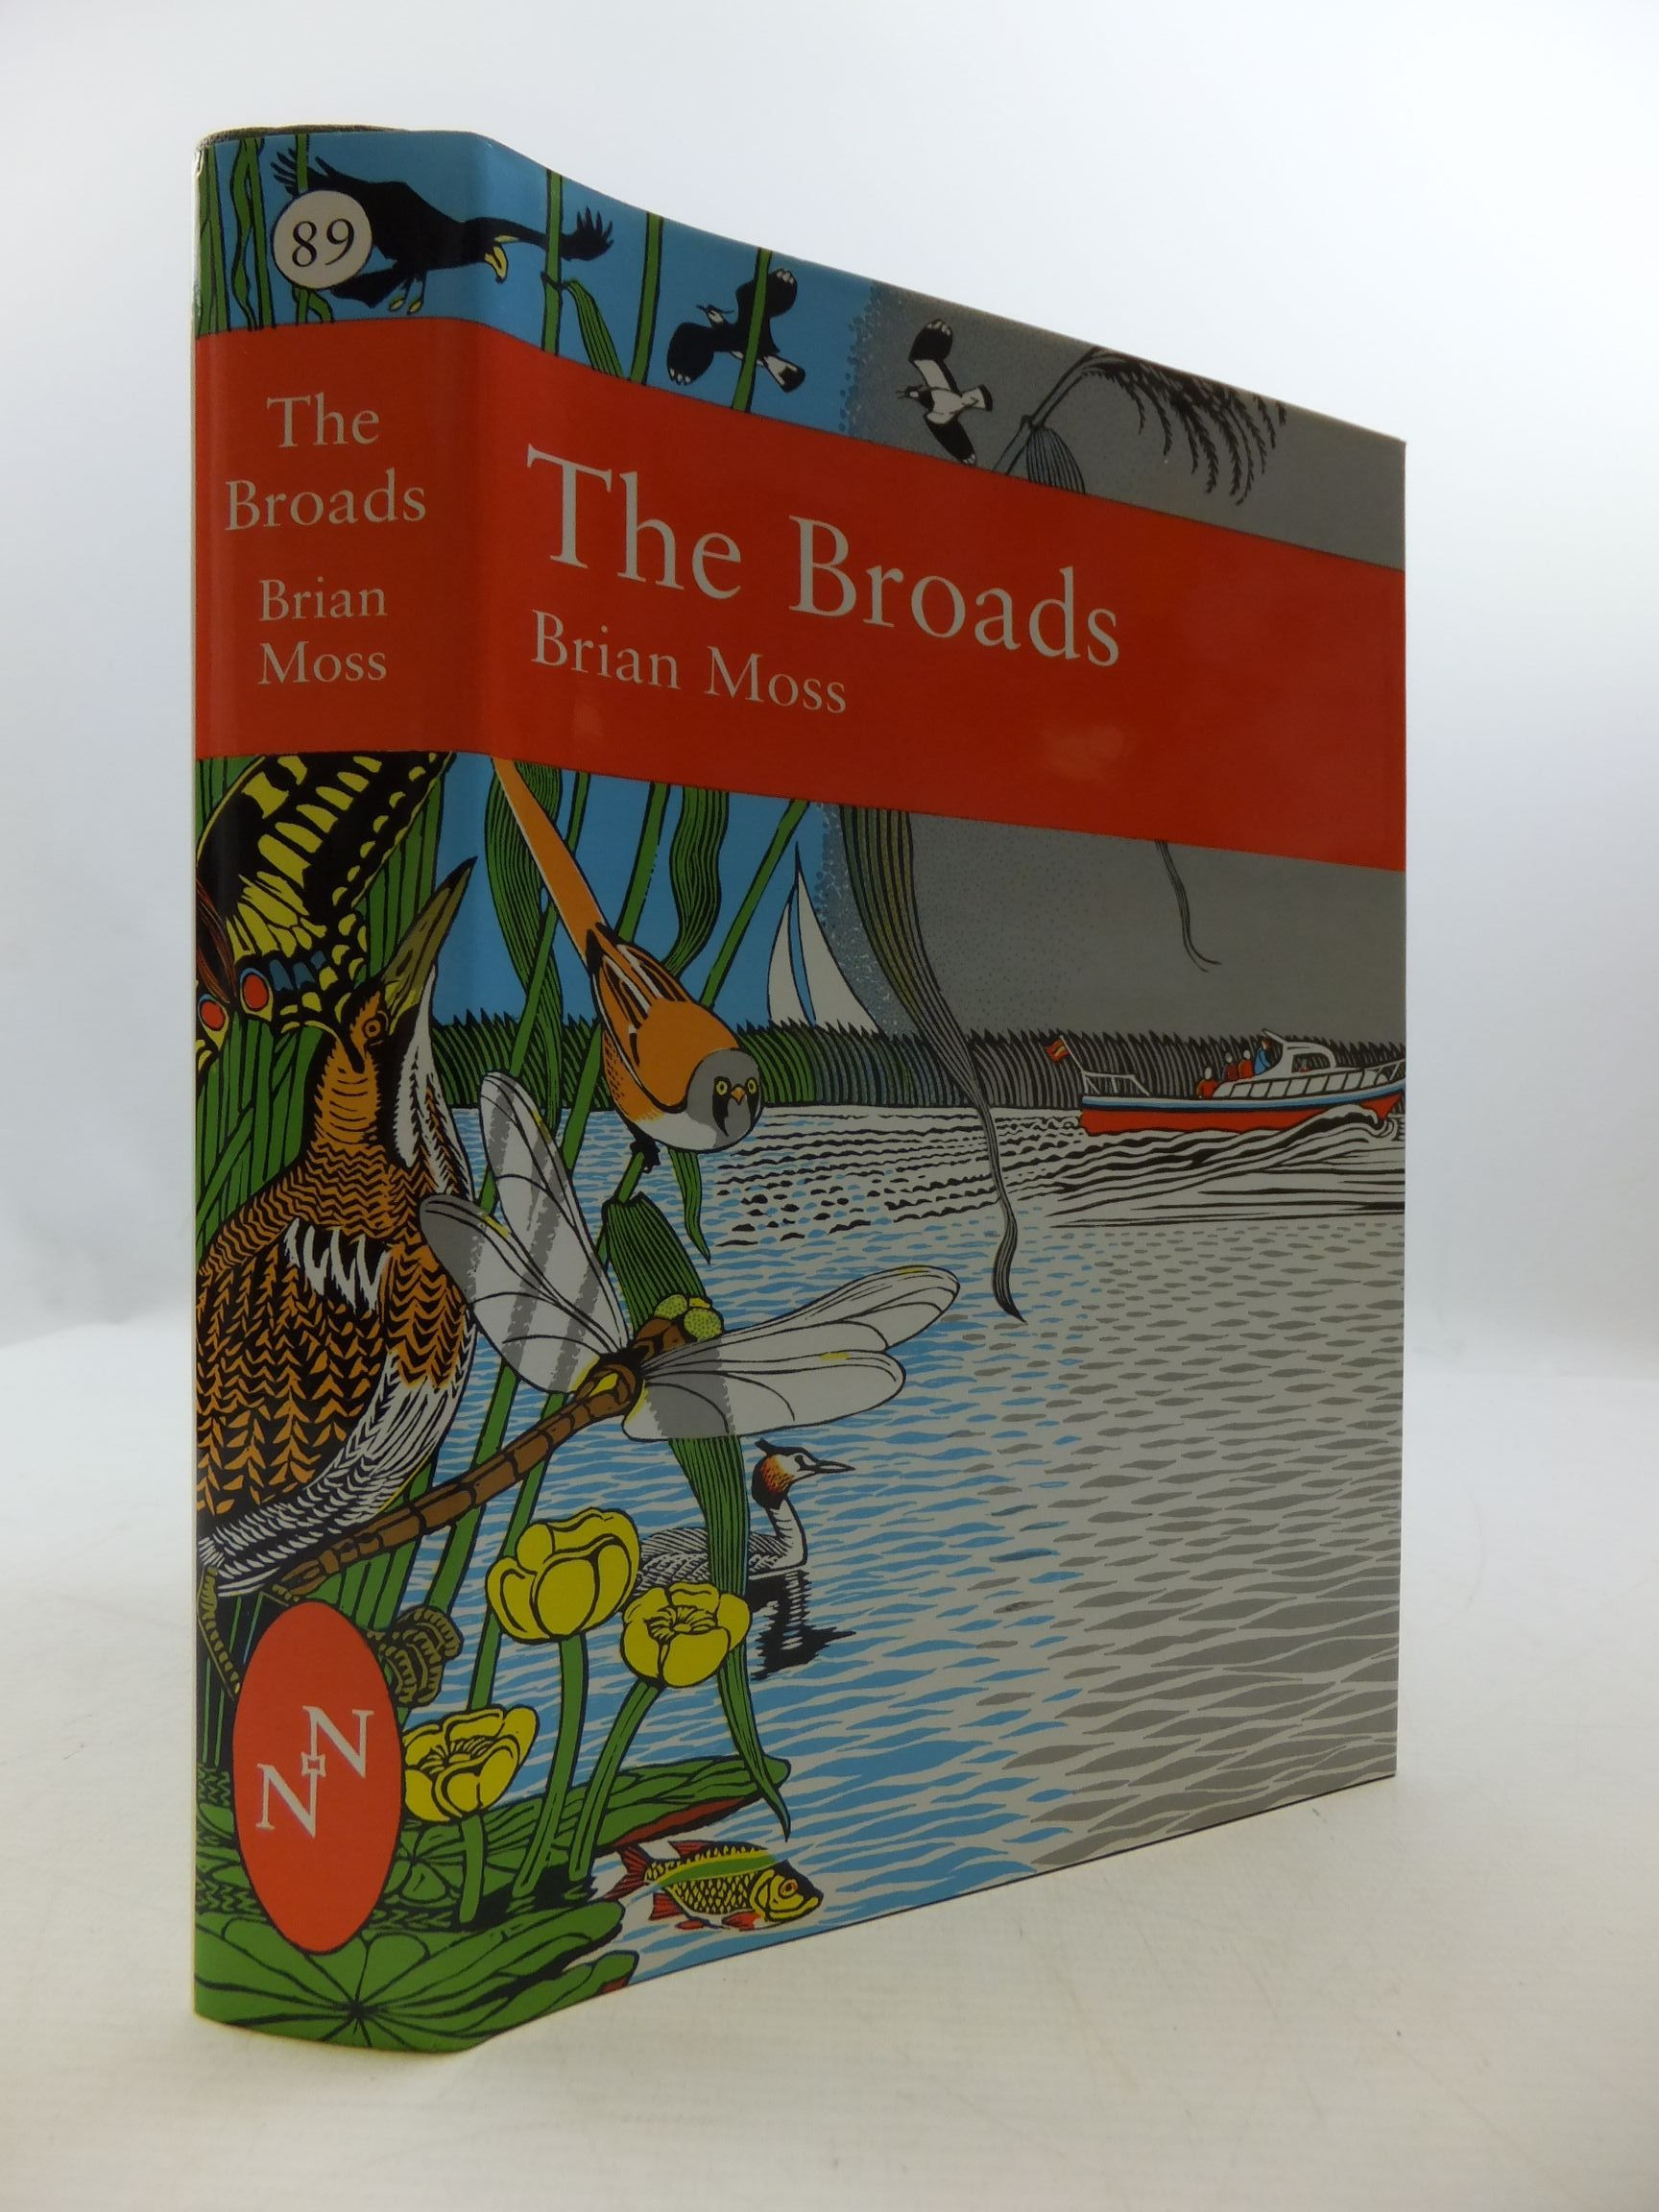 Photo of THE BROADS (NN 89) written by Moss, Brian published by Harper Collins (STOCK CODE: 2110322)  for sale by Stella & Rose's Books